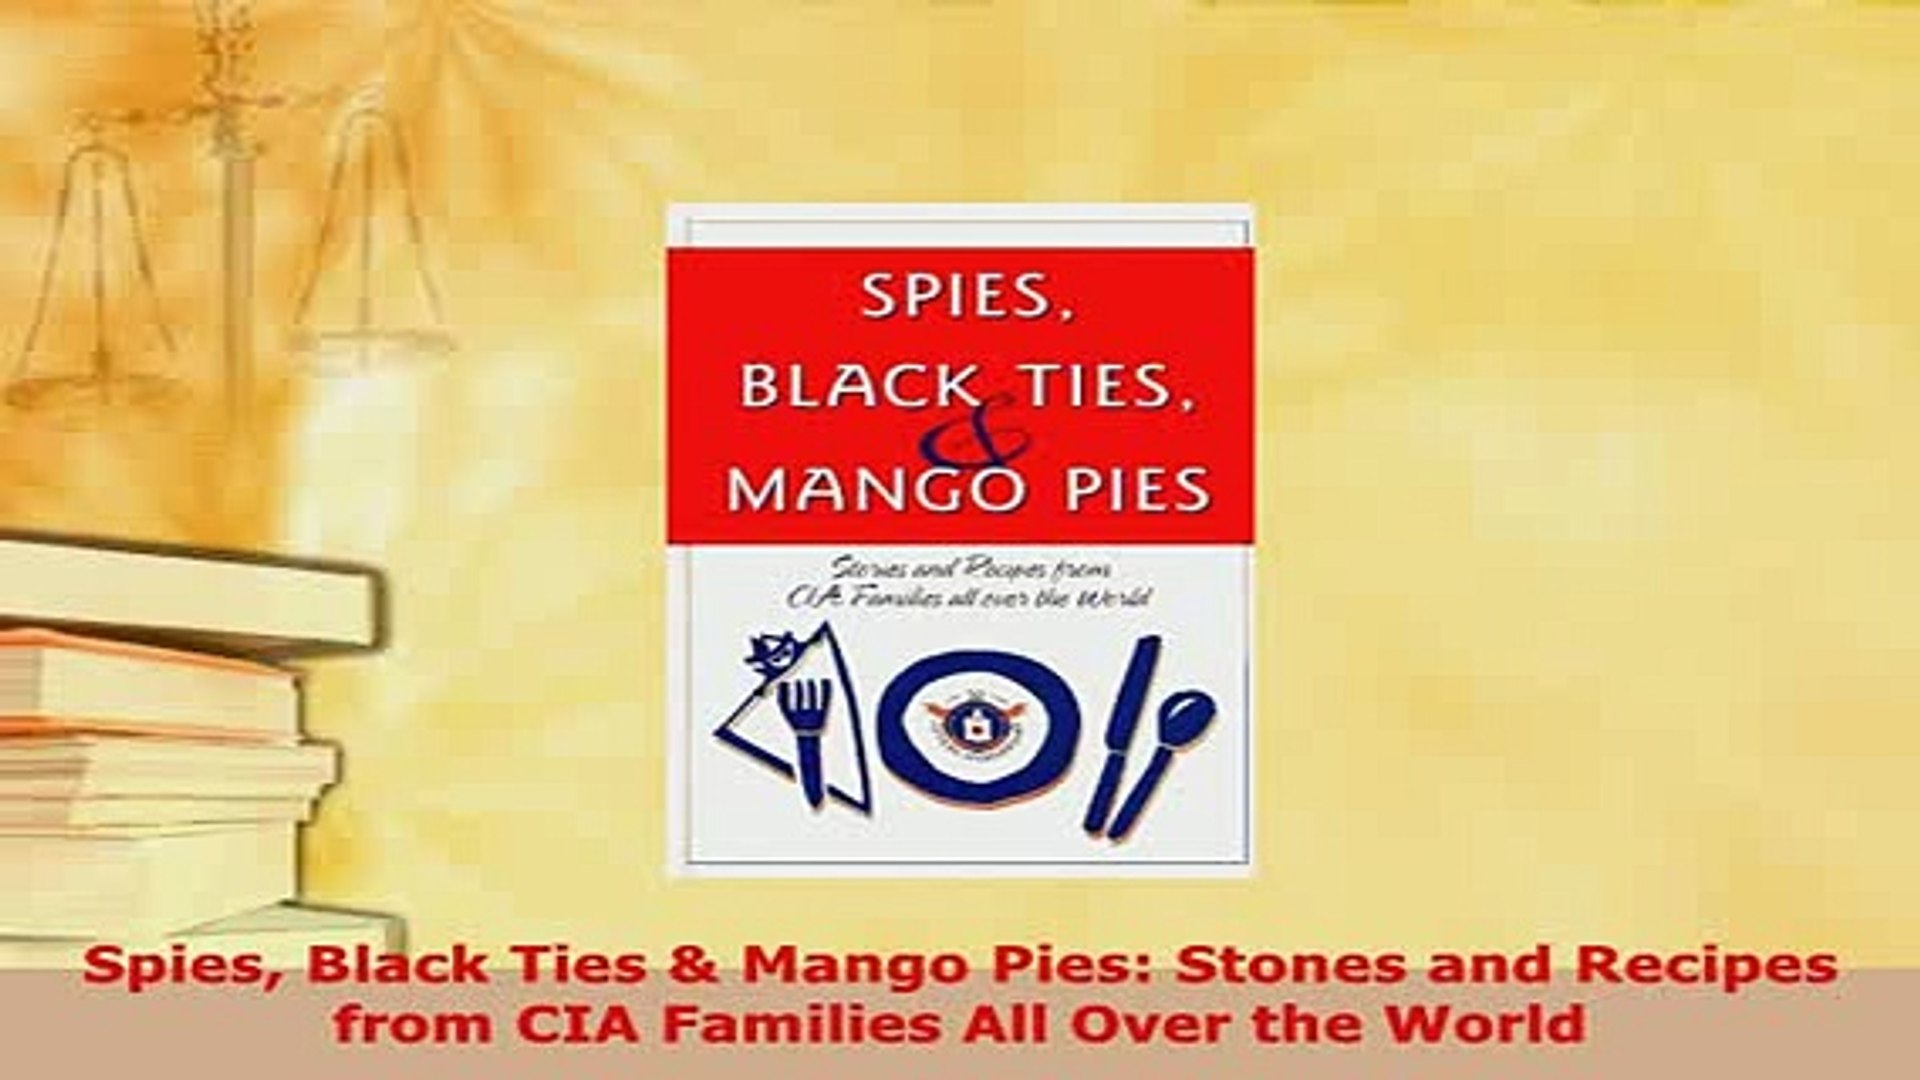 Download  Spies Black Ties  Mango Pies Stones and Recipes from CIA Families All Over the World Downl